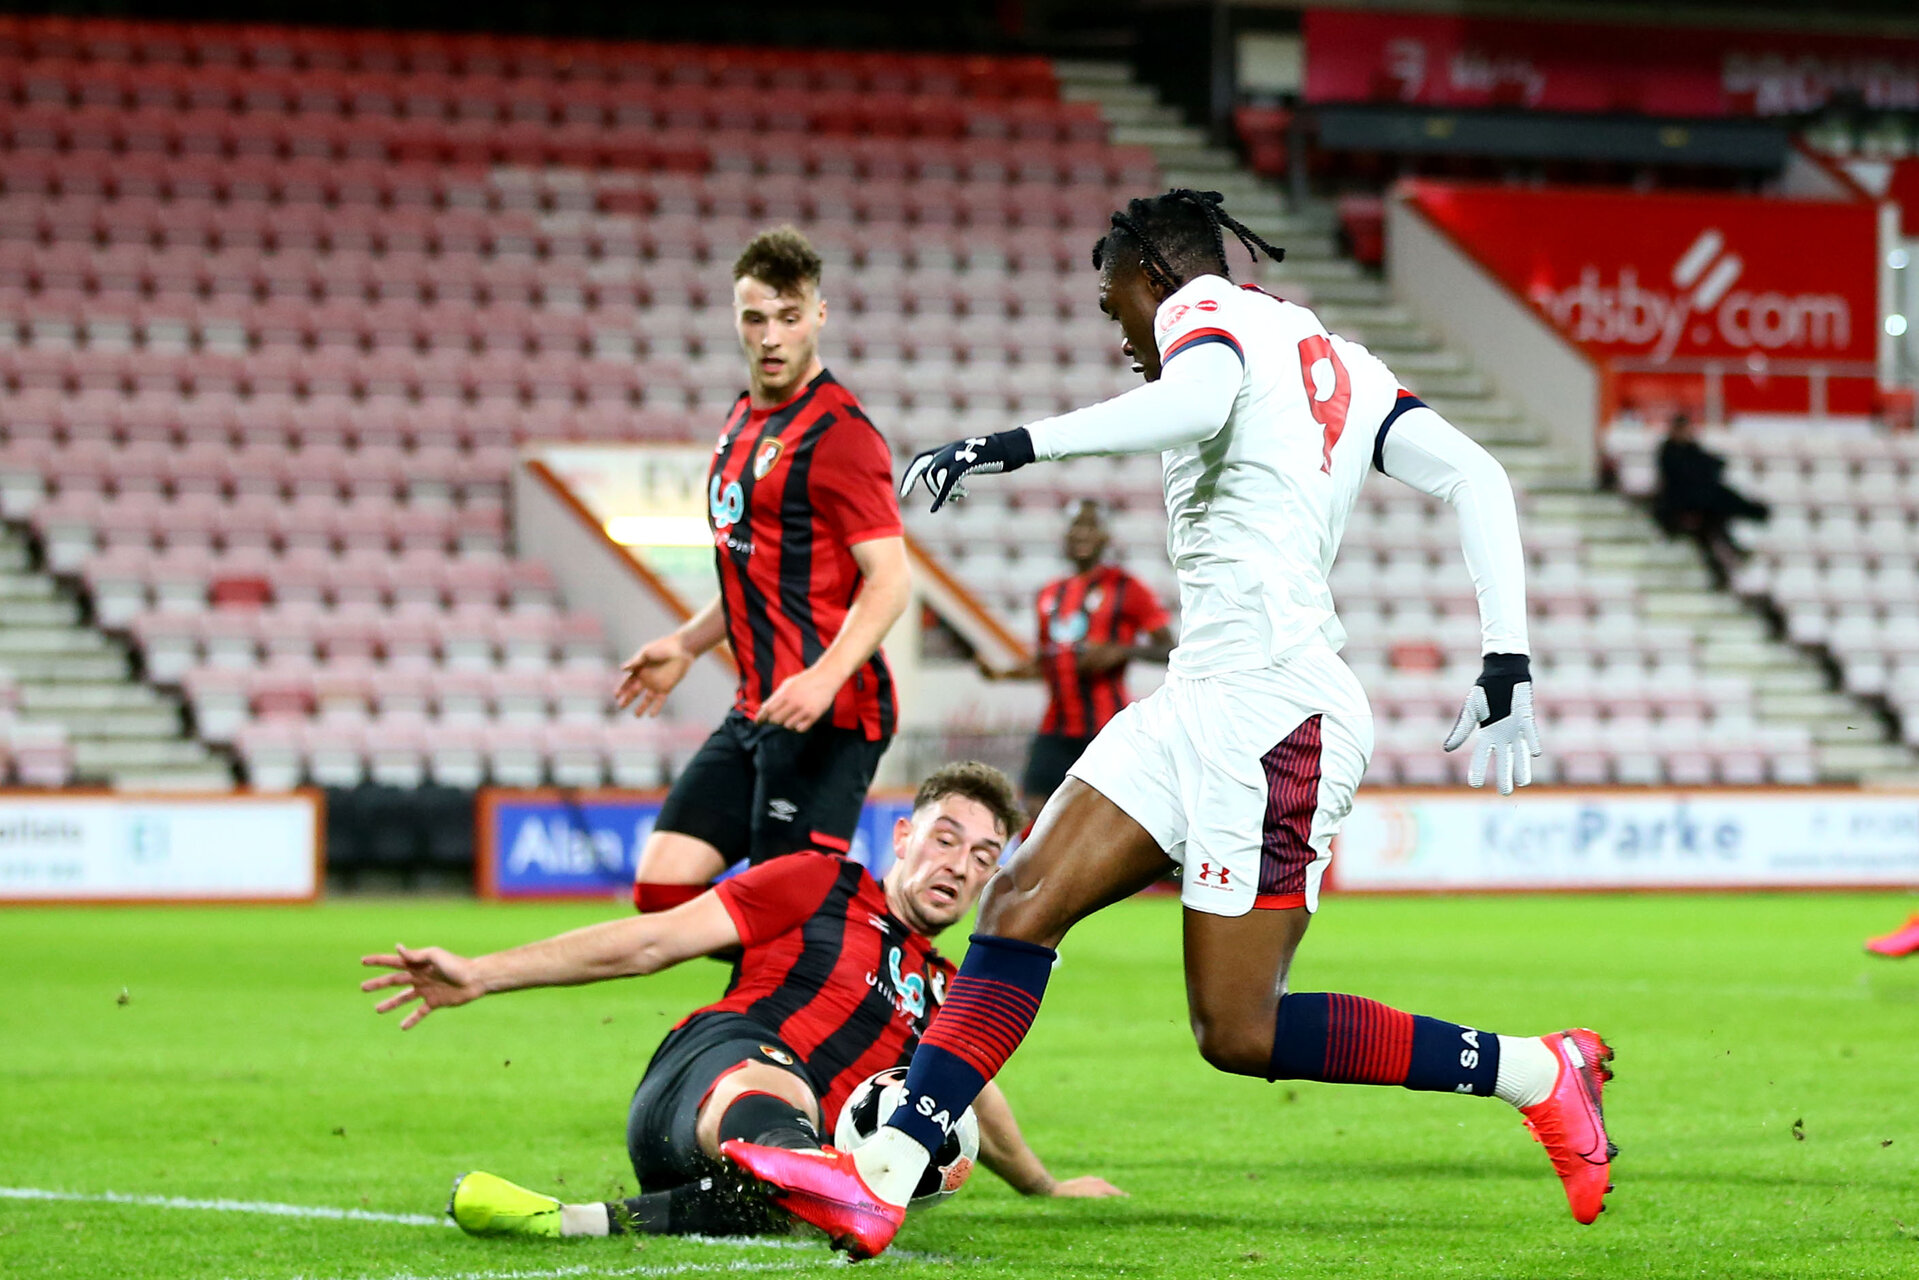 BOURNEMOUTH, ENGLAND - February 21: during the PL2 match at The Vitality Stadium between Bournemouth and Southampton on February 21 2020, Bournemouth, England. (Photo by Isabelle Field/Southampton FC via Getty Images)